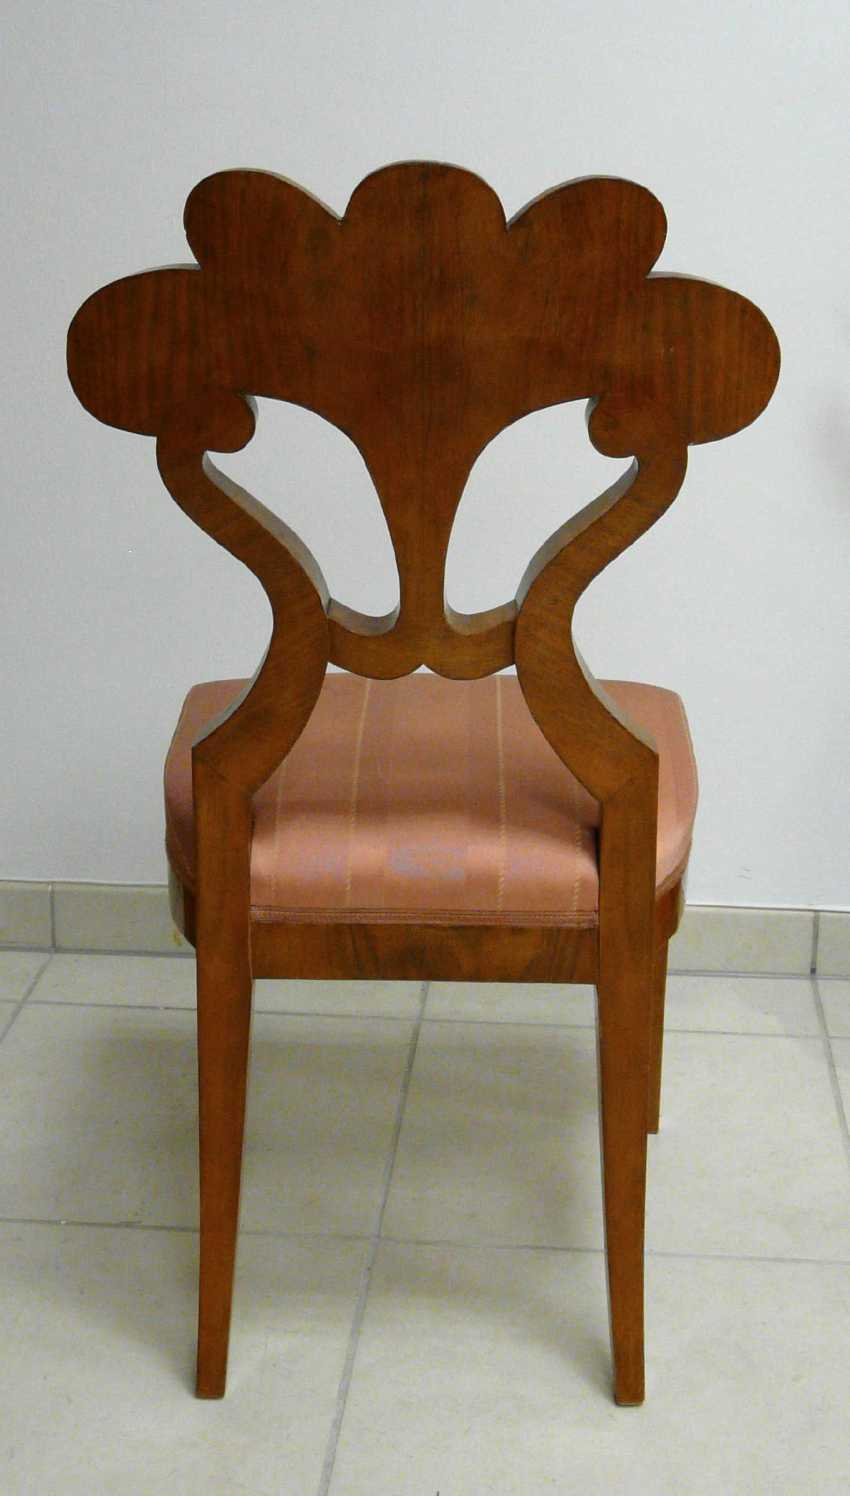 Four chairs in the Biedermeier style - photo 2